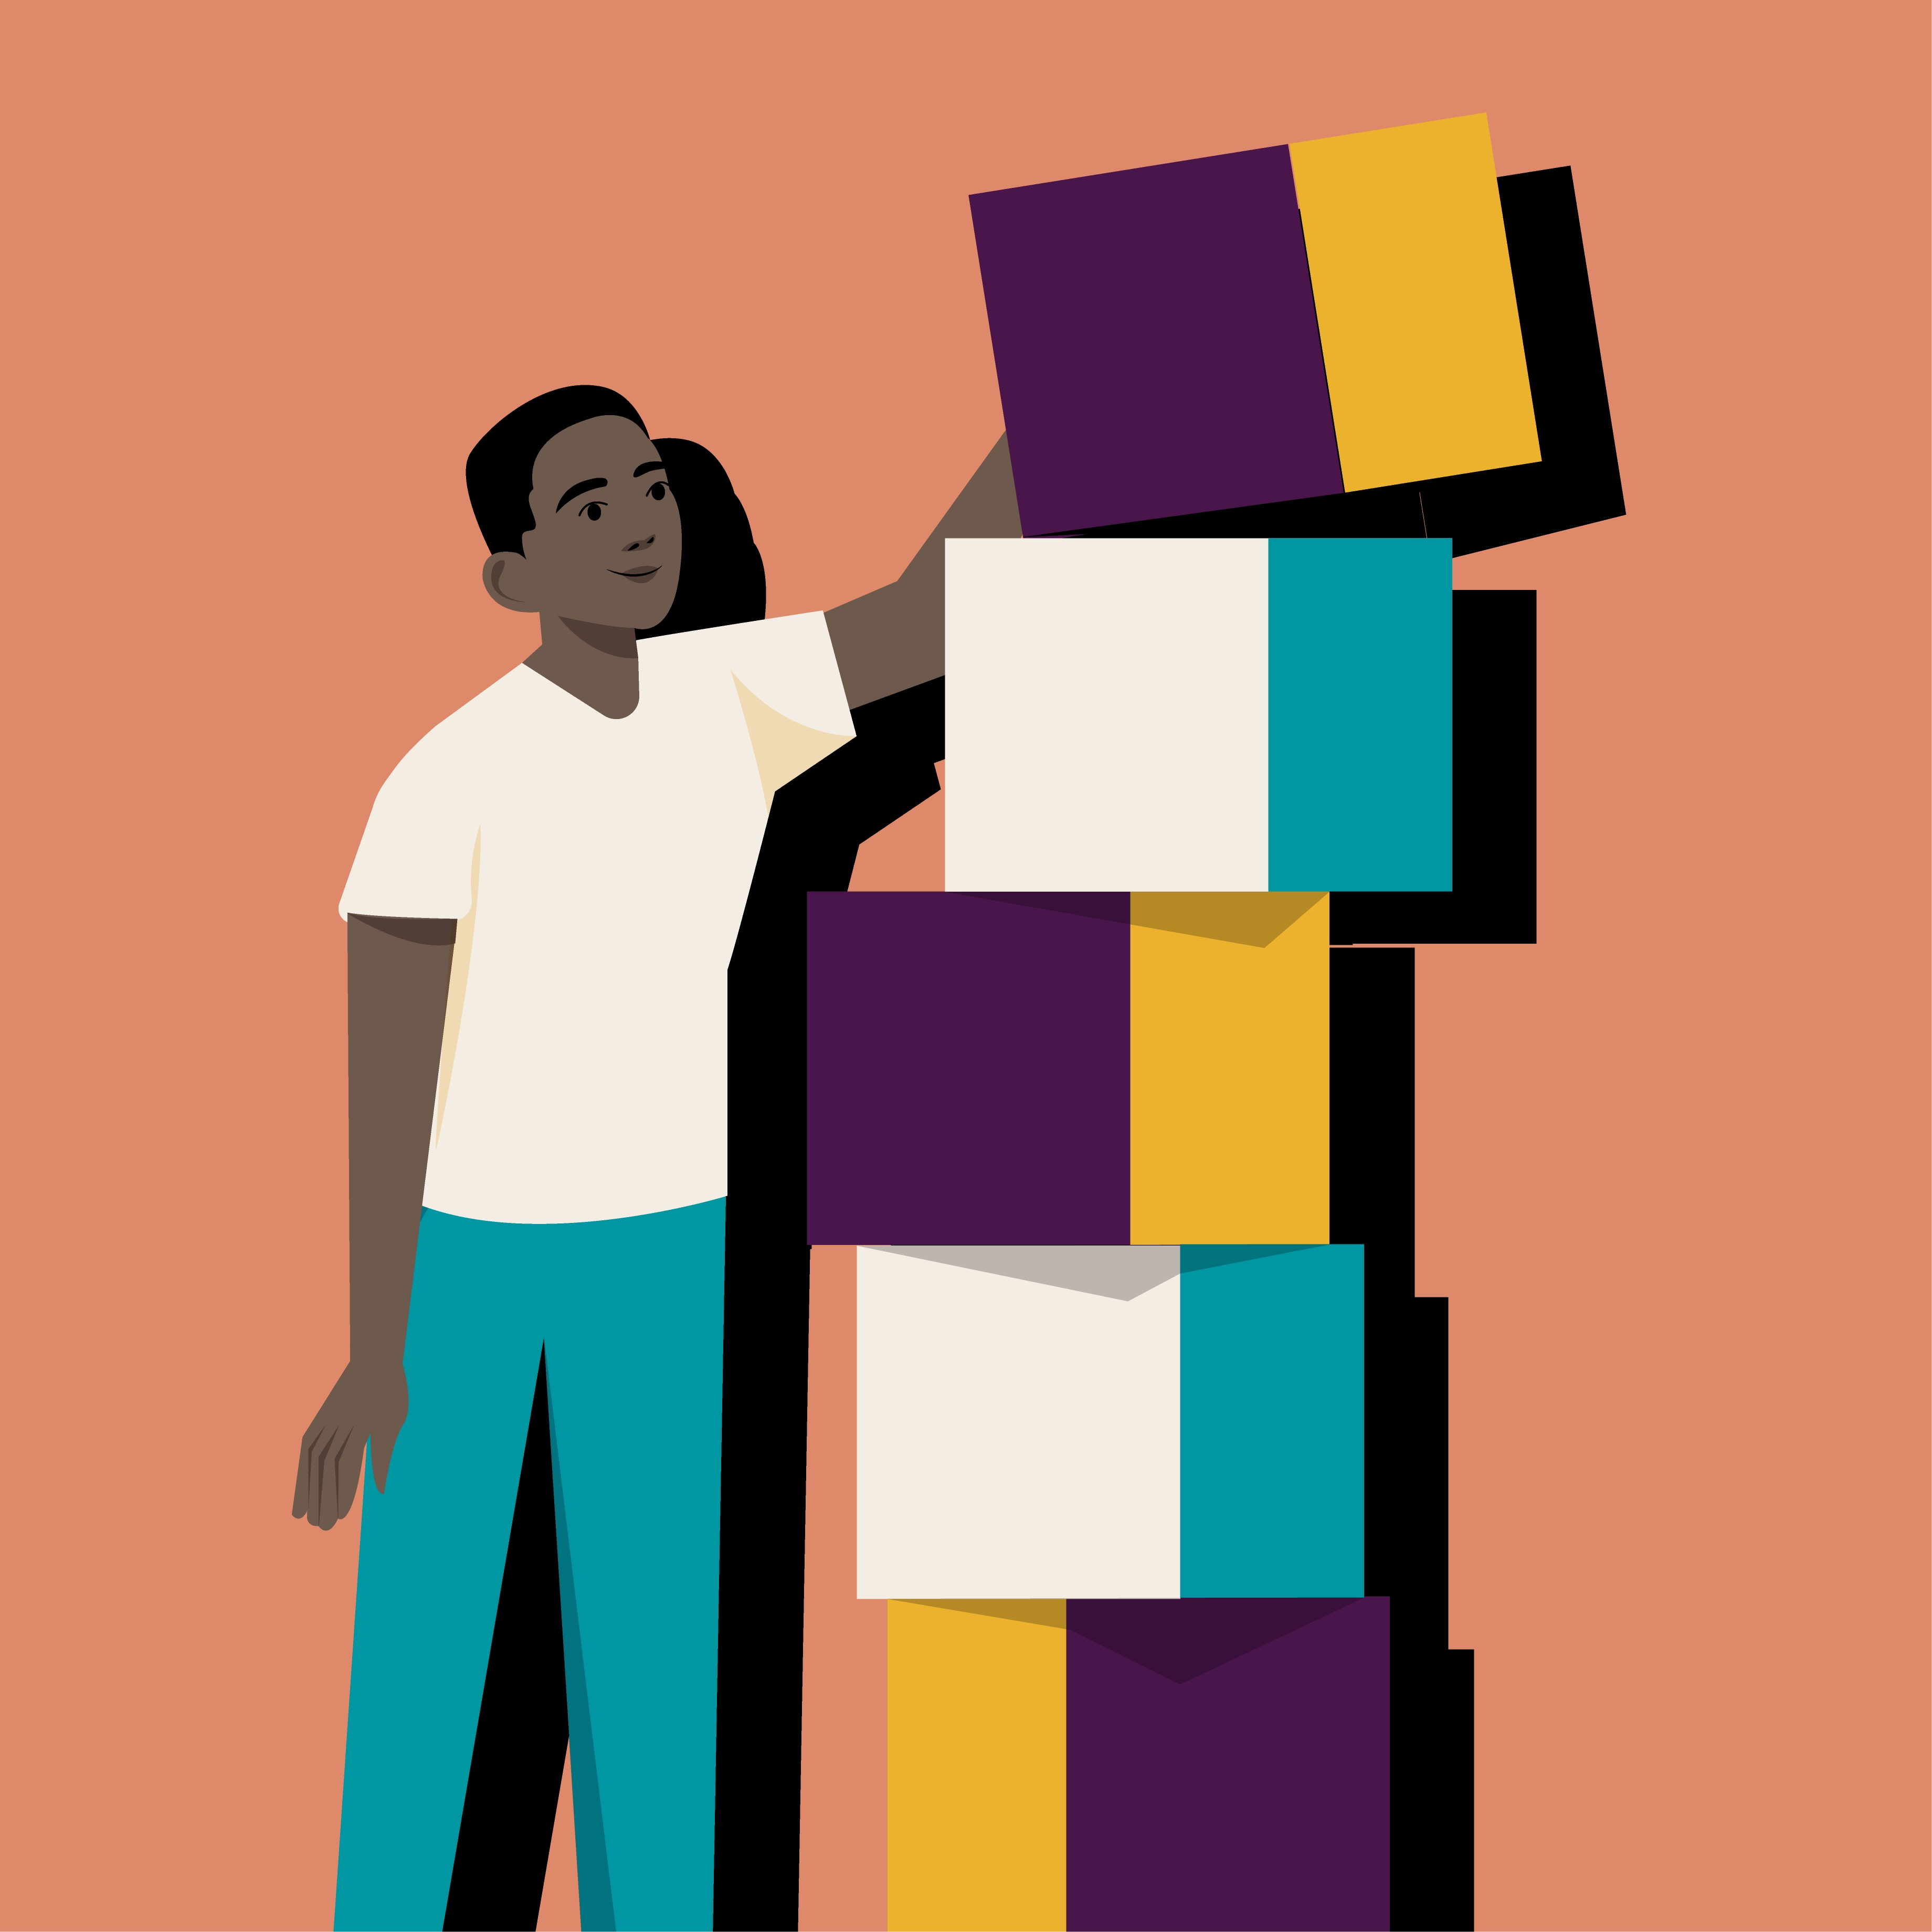 Man stacking blocks on top of each other